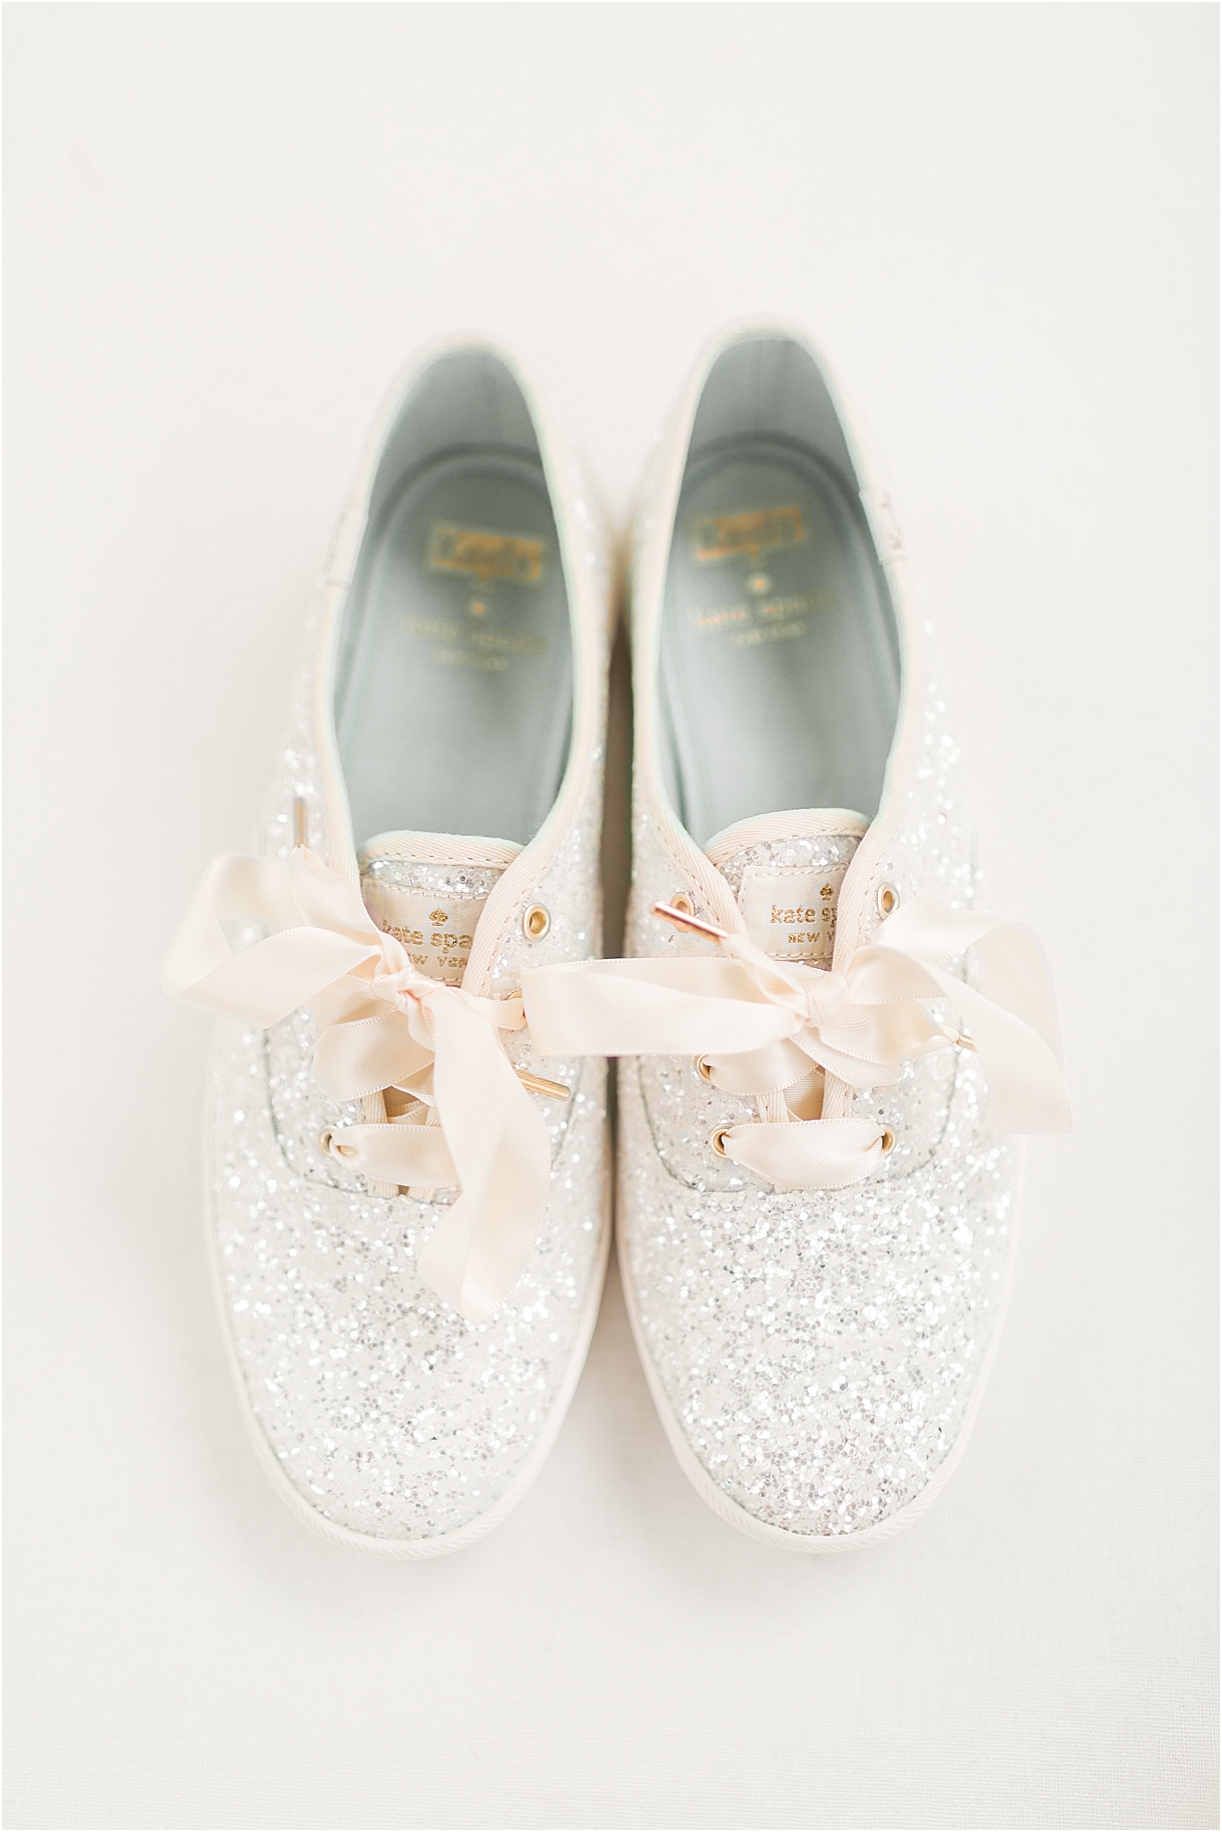 Spring Vineyard Wedding | Hill City Bride Virginia Wedding Blog - Jessica Green Photography - shoes